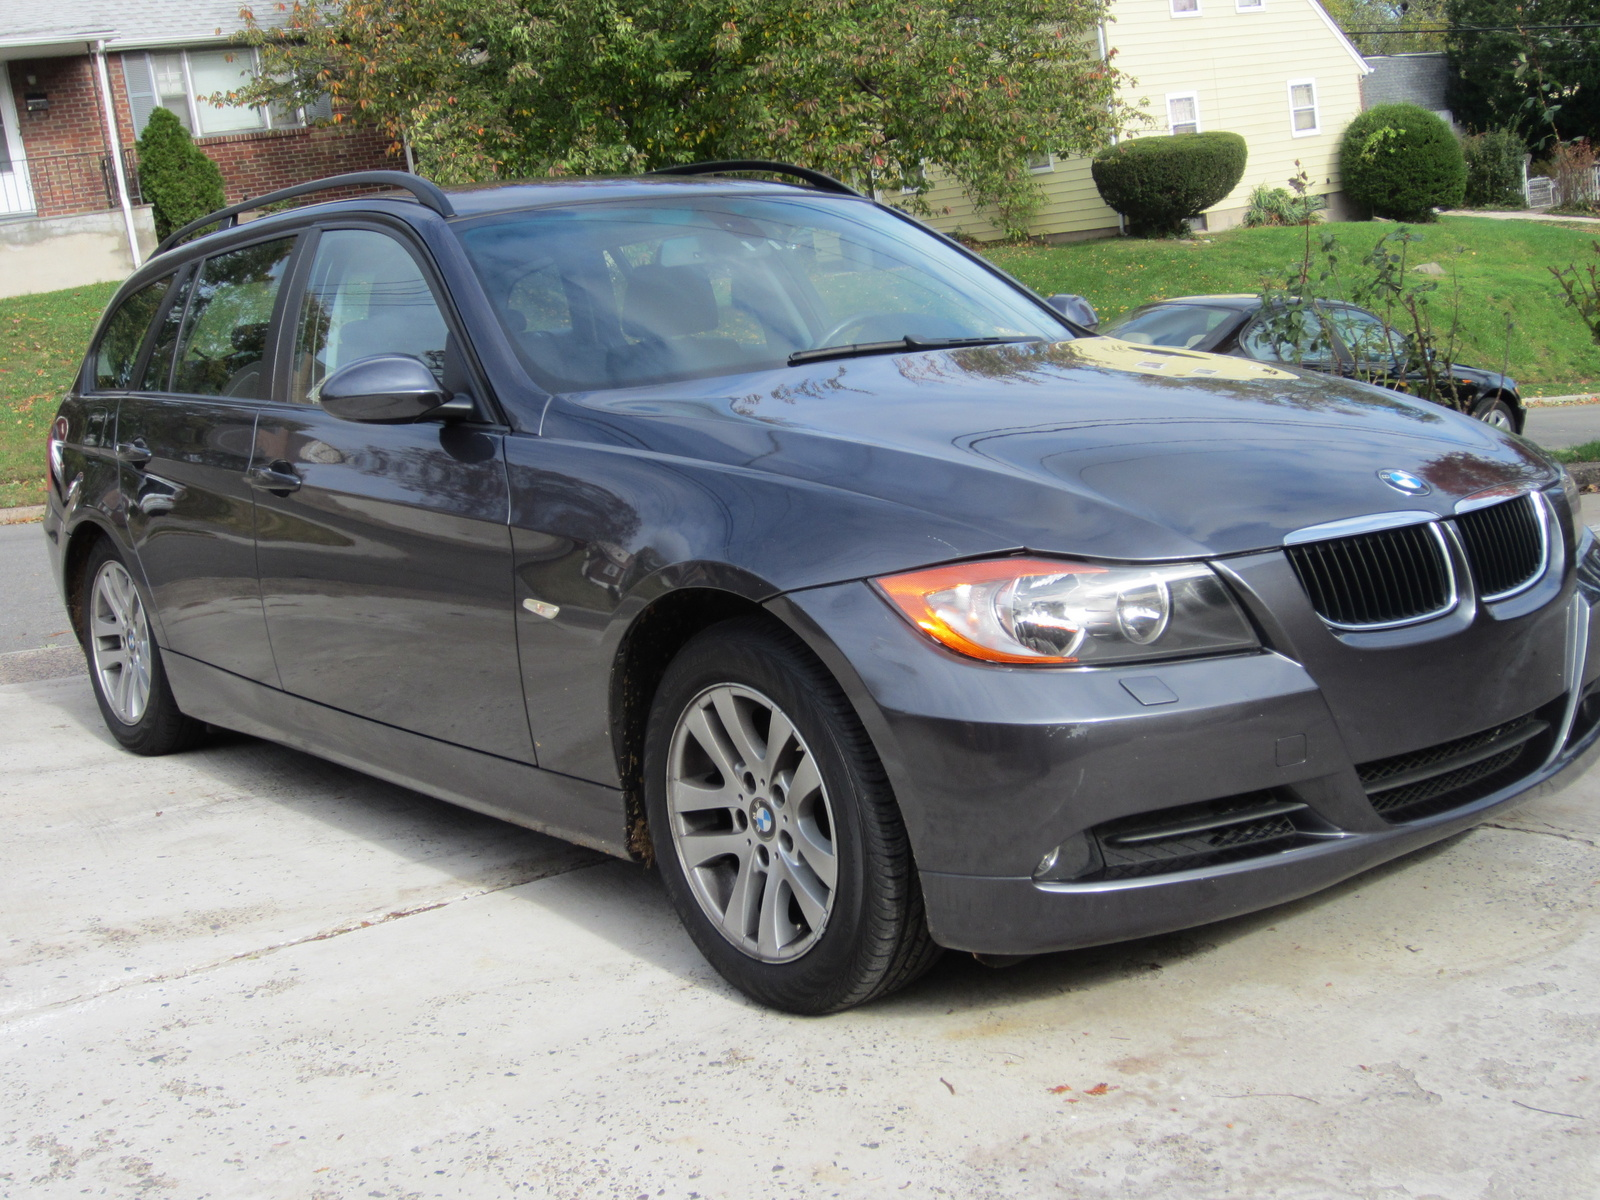 BMW 3 series 325xi 2009 photo - 8